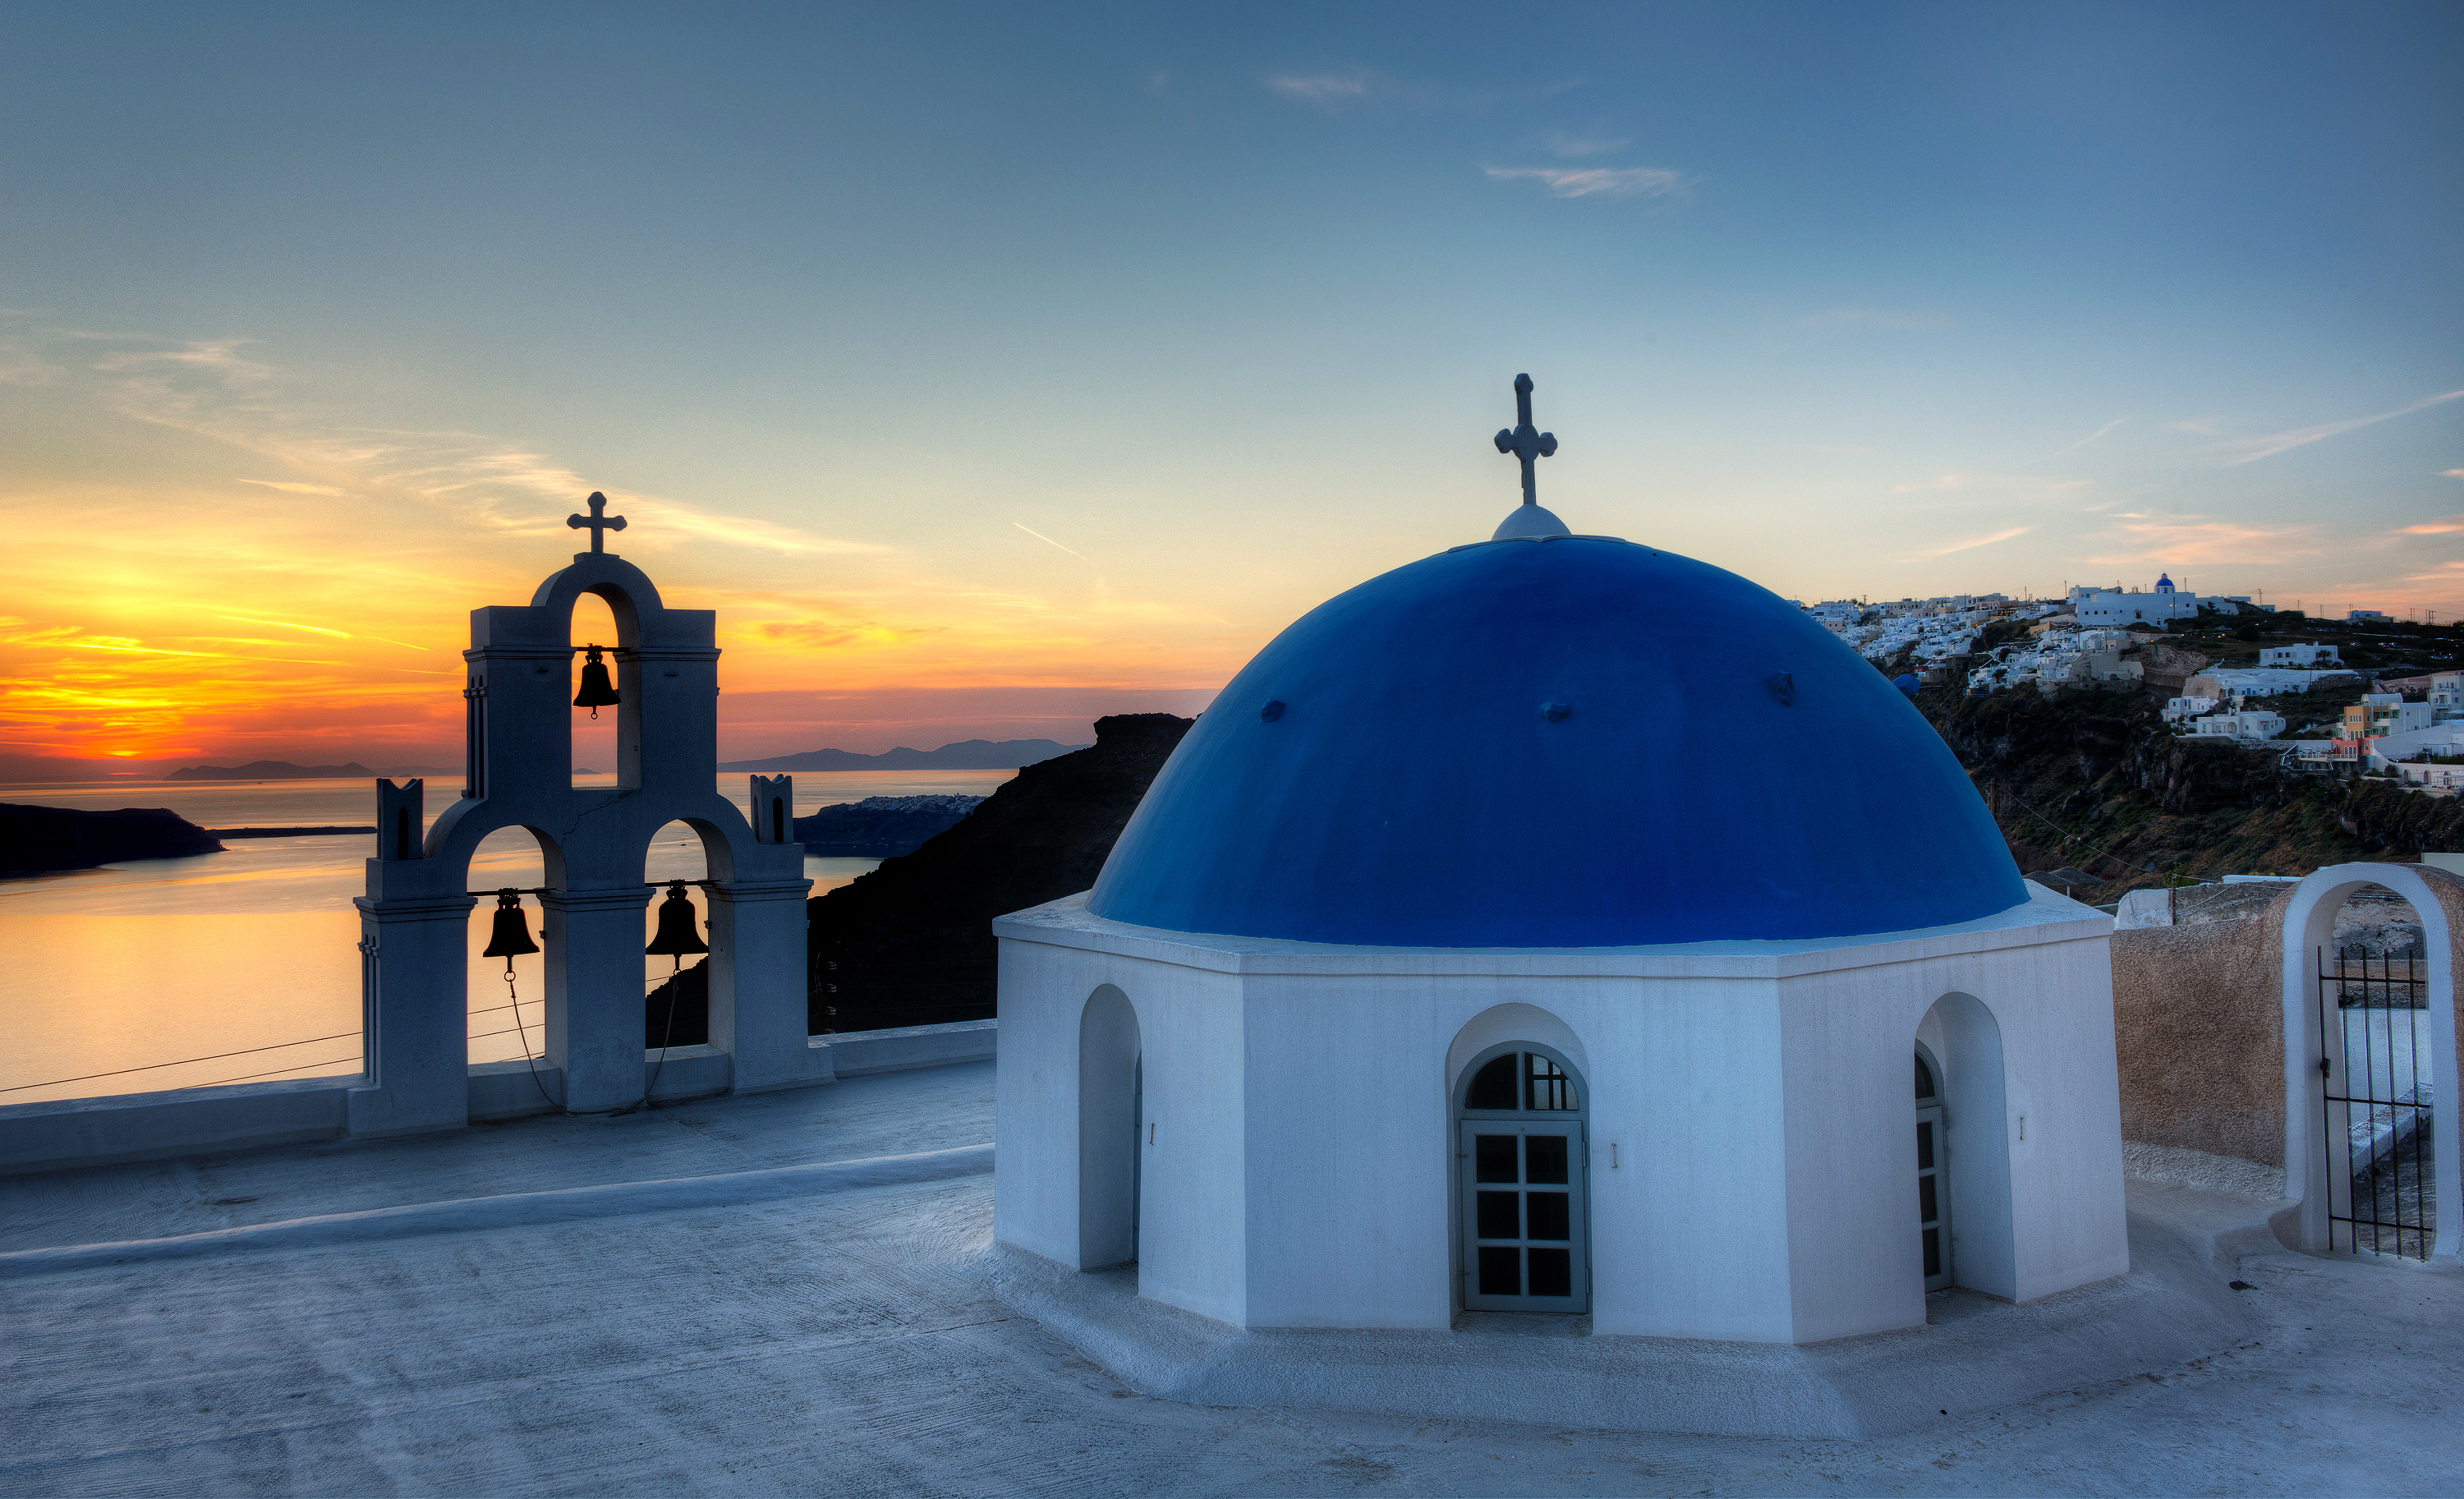 santorini-greece-by-andre-ermolaev-04